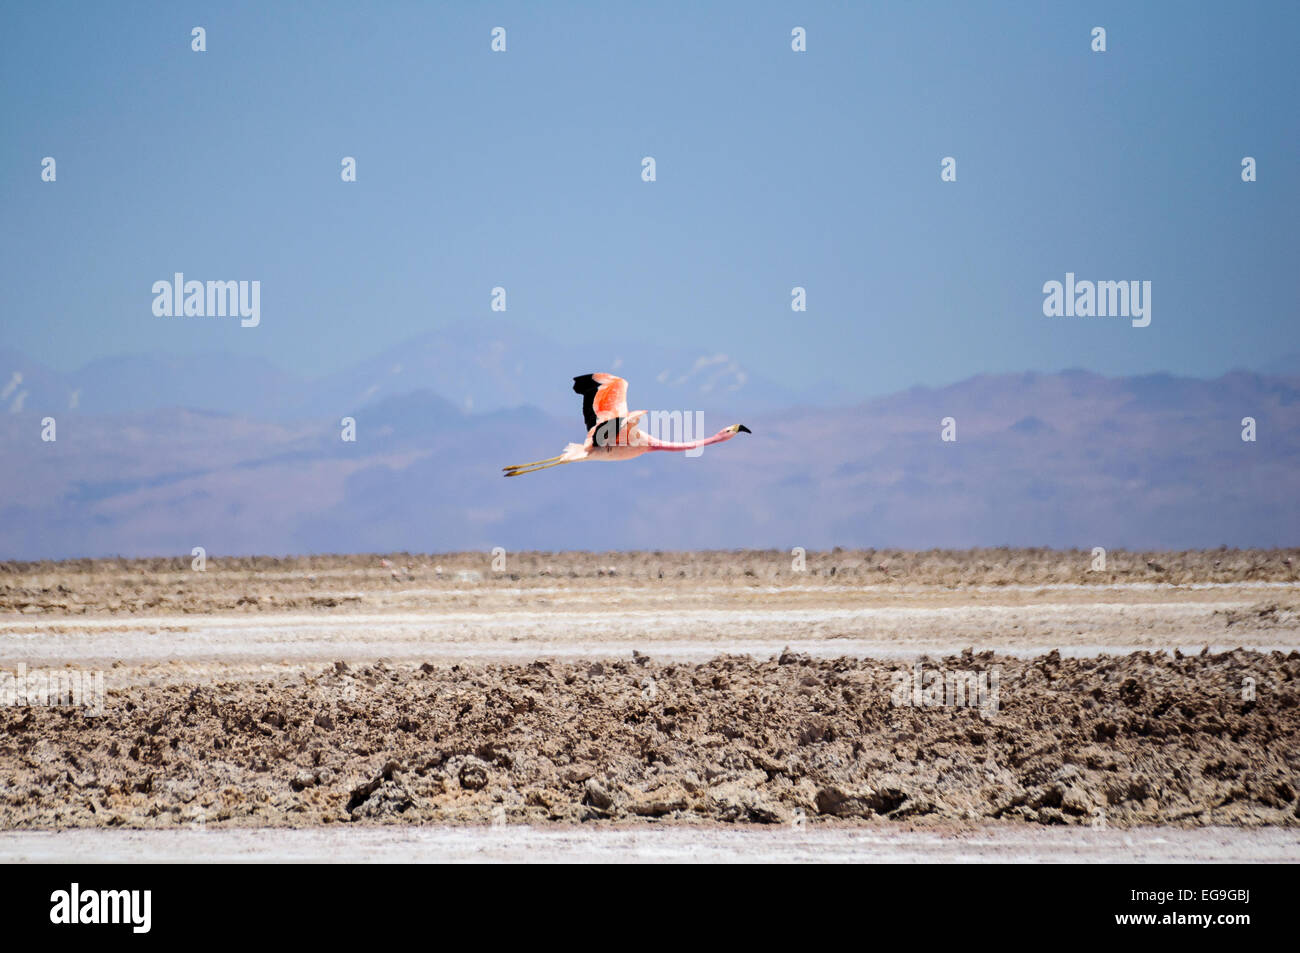 Chile, San Pedro de Atacama, Flamingo flying over desert - Stock Image